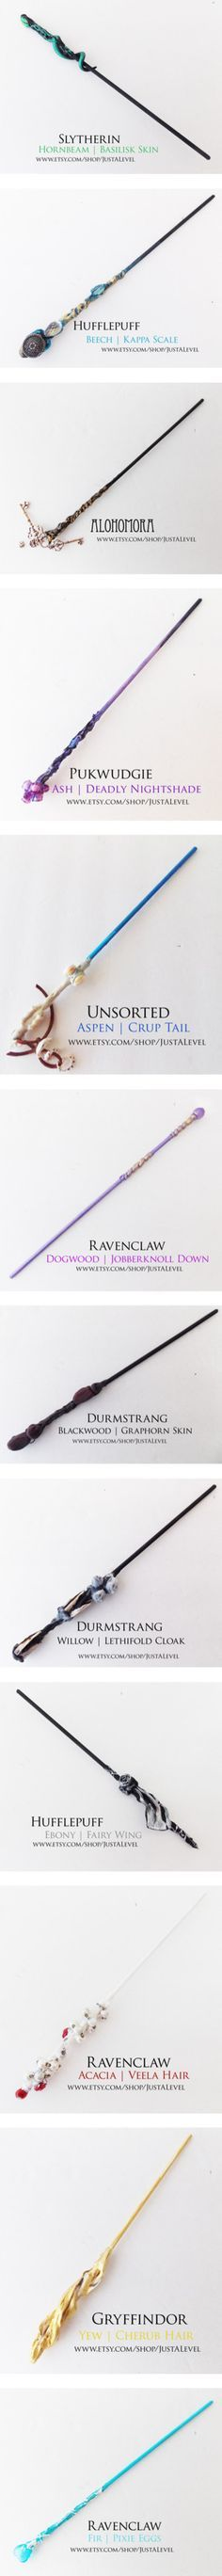 Harry Potter Inspired Wands by grandmasfood on Polyvore featuring beauty products, harry potter, wand, wands, accessories, ravenclaw wand, gryffindor wand, haircare, hair styling tools and handmade home decor